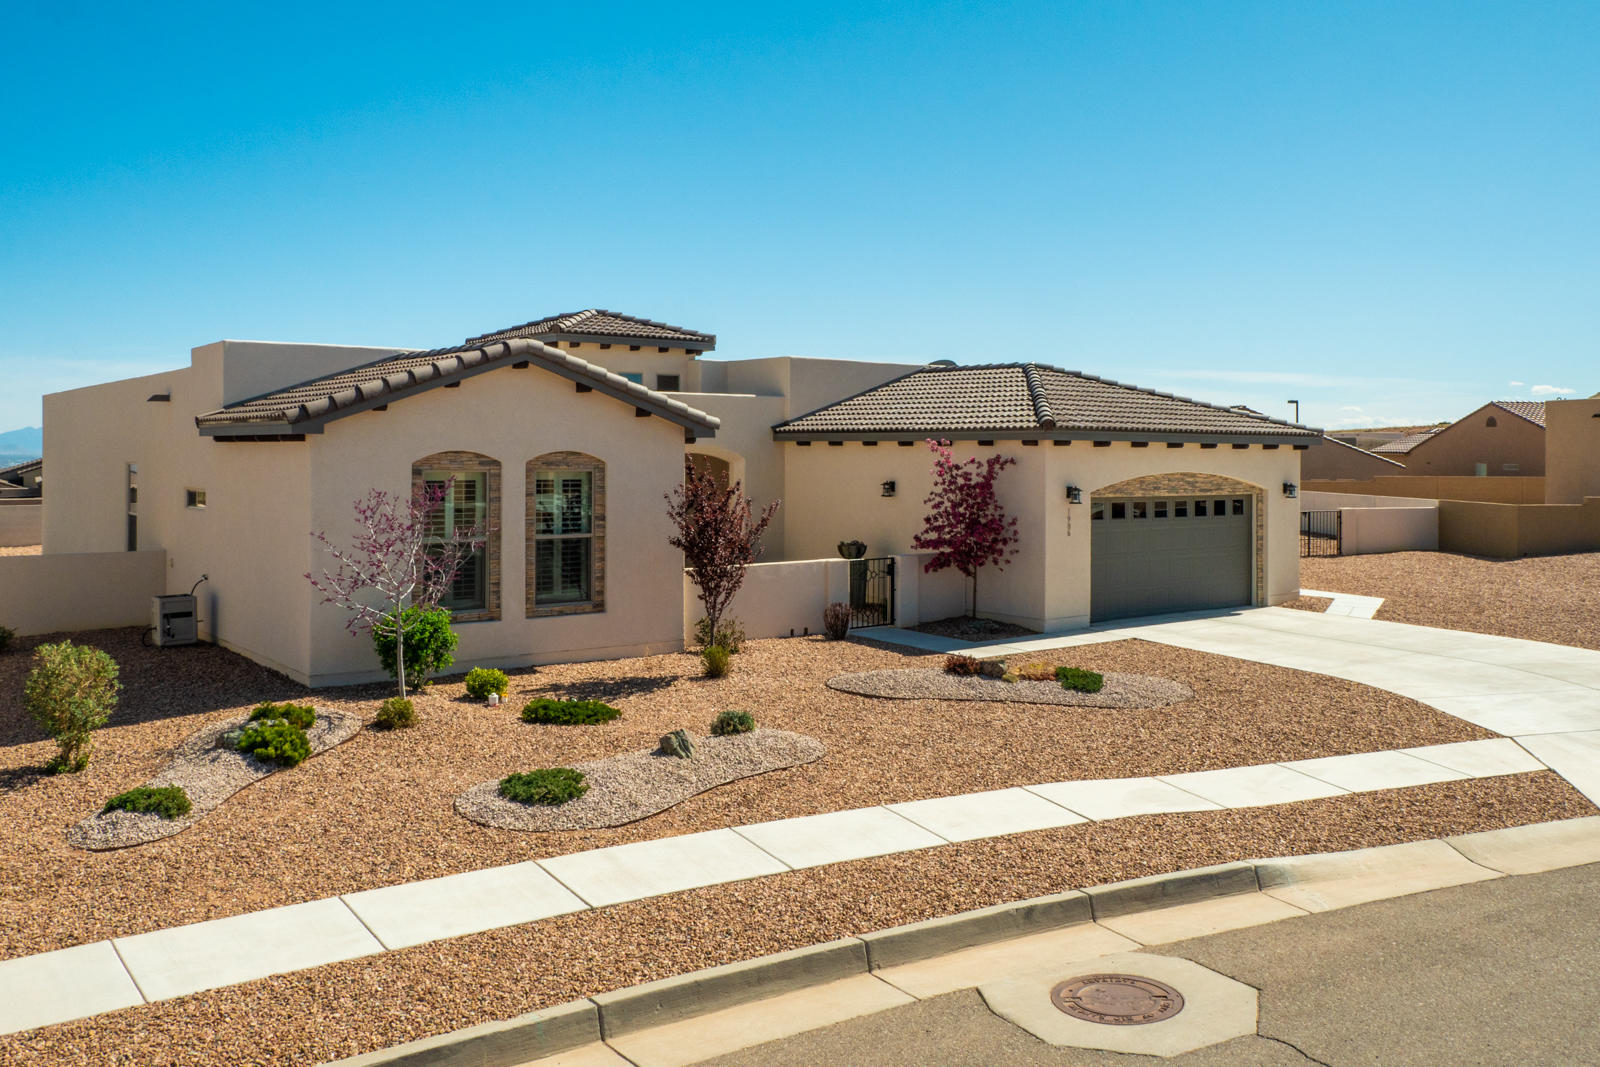 Stunning semi-custom home with sweeping mountain views!  Located in The Peaks @ Mariposa ! 6,500-acre community with 2,300 acres of open space, nature/trails, community center, indoor/outdoor pools, fitness center & parks.  This 2,600+SF home features 3 BRs, 2.5 BA & 3 car tandem garage.  The open concept plan has lots of natural light, coffered ceilings & designer finishes.  The gourmet kitchen boasts quartz countertops, Stainless appliances, and large Kitchen Island with attached dining area! Private Owner's Suite provides a luxurious Bath with walk-in shower and his/her walk-in closets.  Outdoor living at it's best with covered & open patio area, gas fireplace and extra large lot perfect to add your pool or office/casita.  Make this dream home yours today.  Virtual tour available.